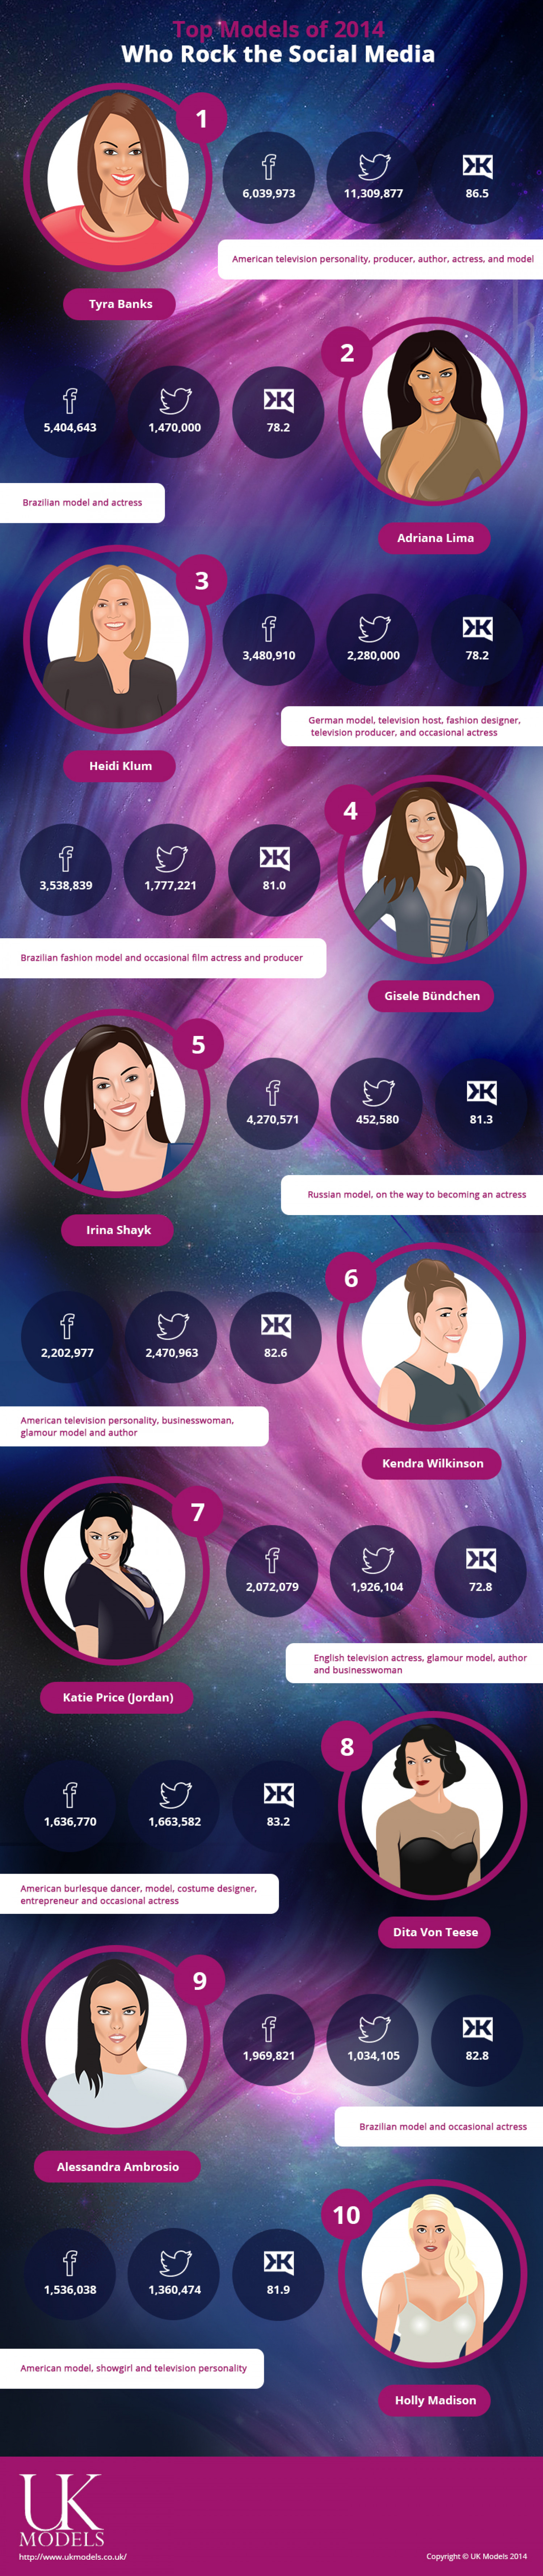 Top Models of 2014 Who Rock the Social Media Infographic